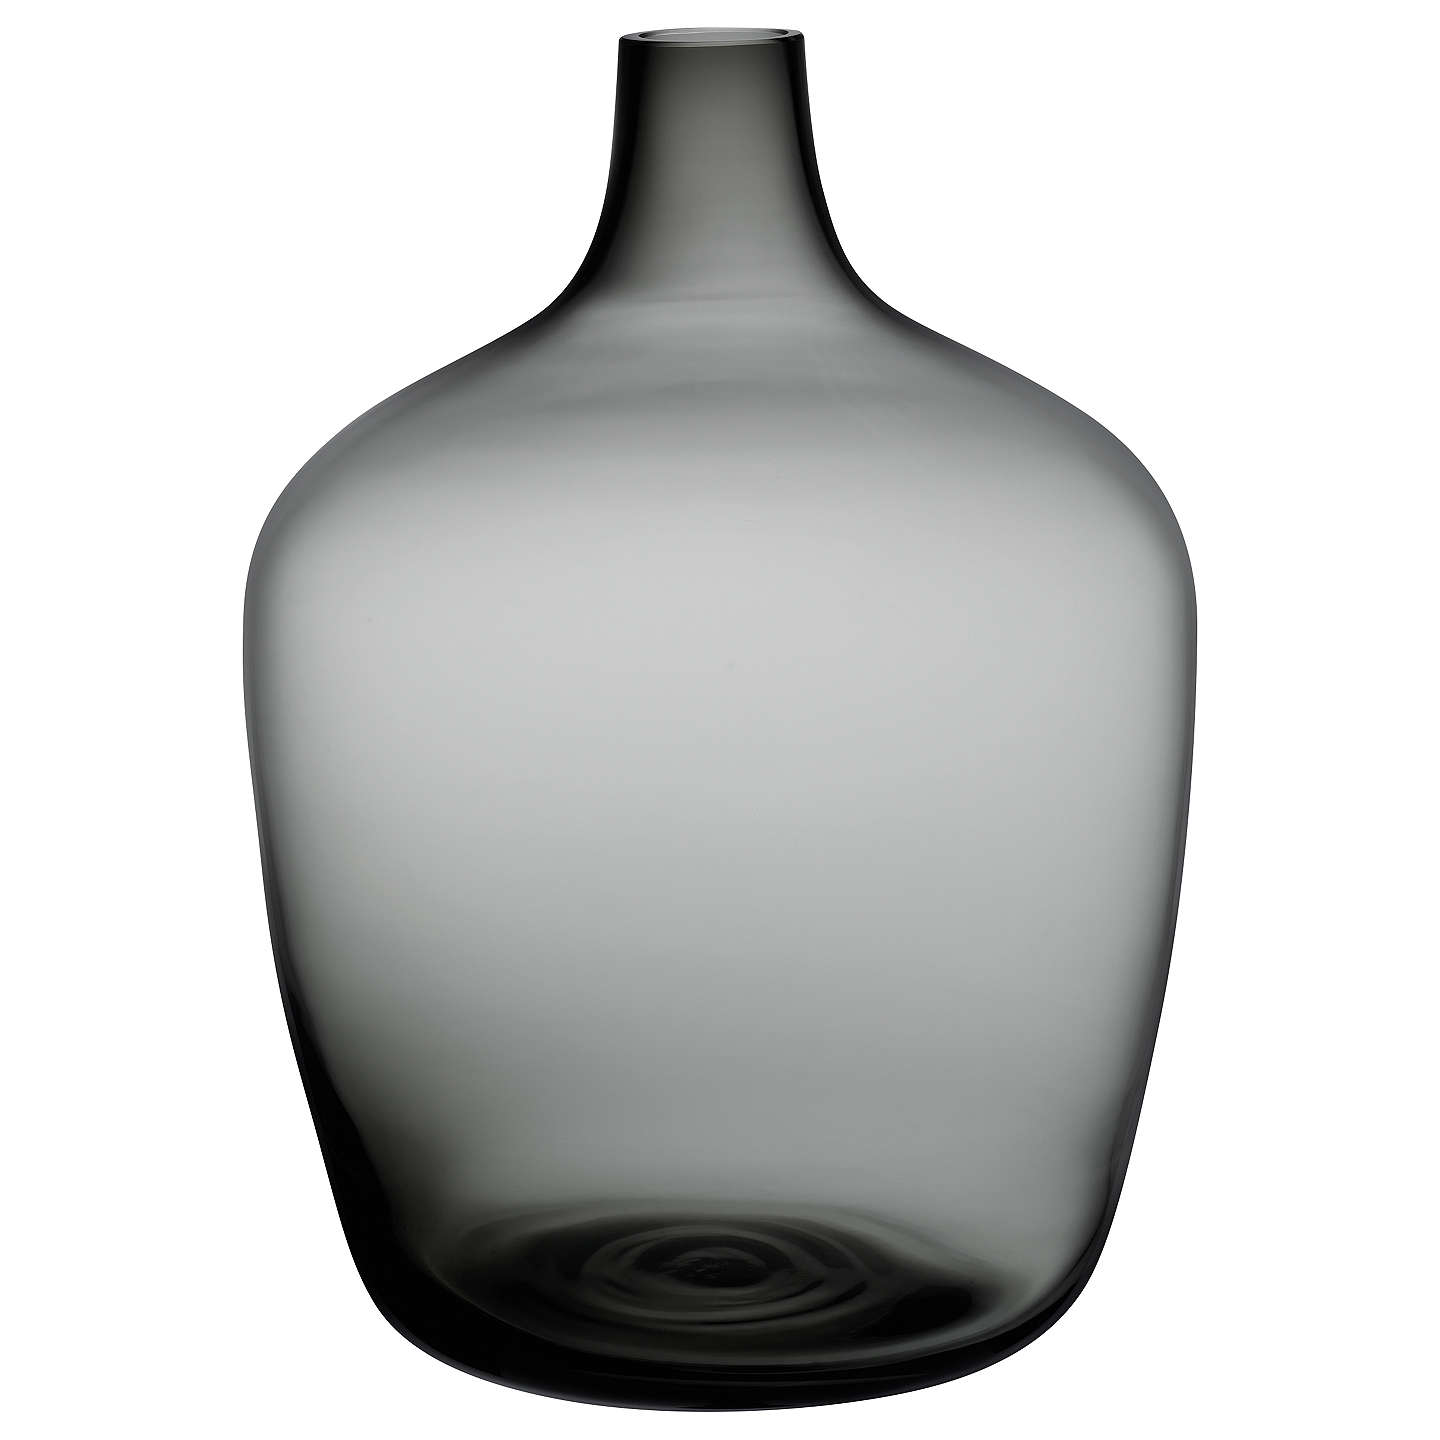 Nude Glass Dame Jeanne Demijohn Glass Vase, Large, Smoke at John Lewis